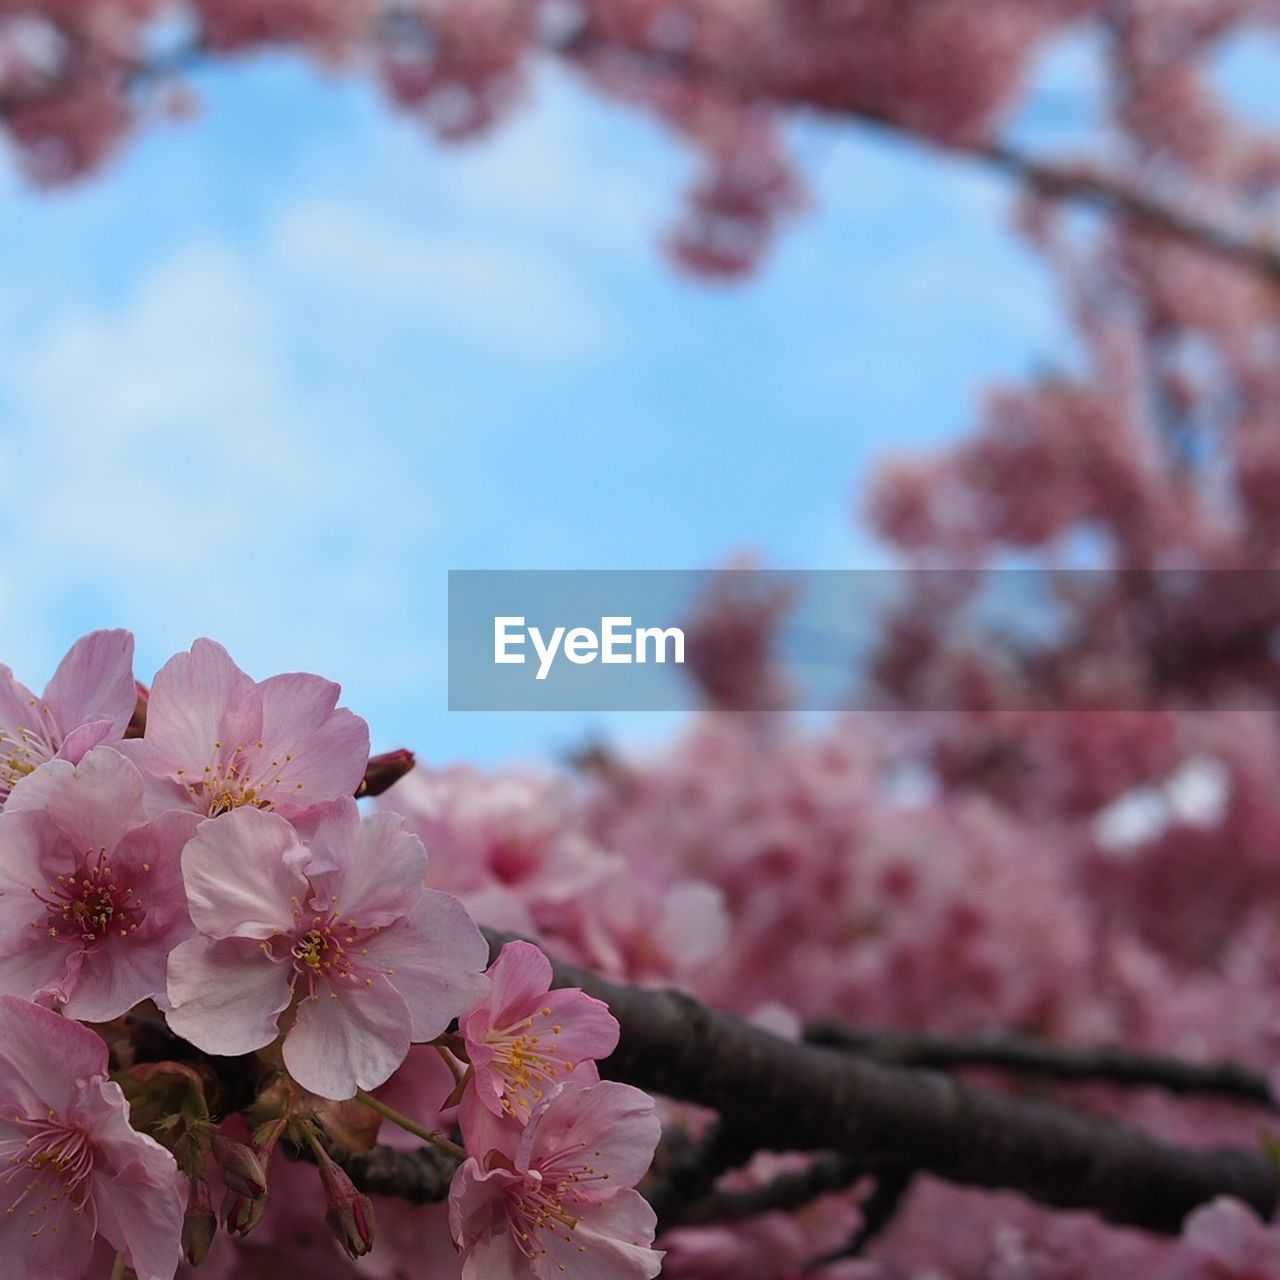 flower, beauty in nature, fragility, blossom, growth, nature, tree, pink color, springtime, freshness, cherry tree, branch, petal, botany, no people, apple blossom, orchard, low angle view, day, outdoors, plum blossom, blooming, close-up, sky, flower head